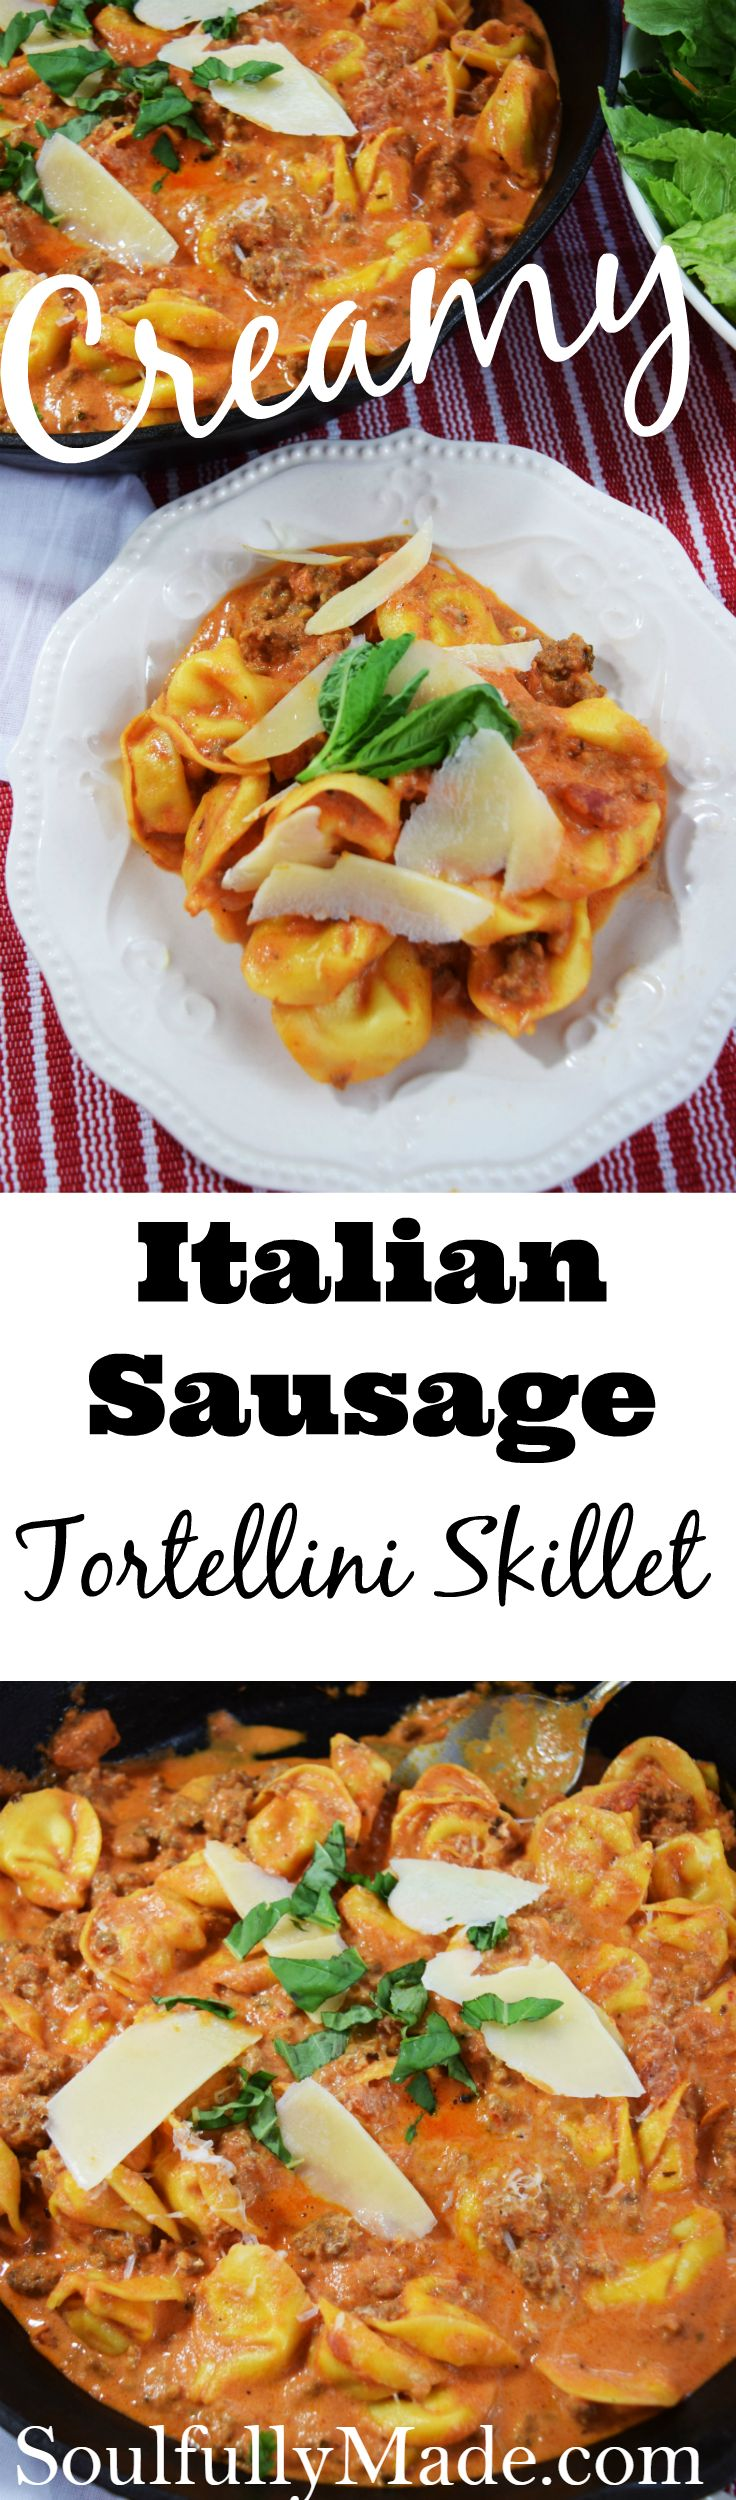 Take 5 Ingredients and 20 Minutes, you'll end up with a restaurant worthy dinner served at home. This Creamy Italian Sausage Tortellini Skillet is an easy, family pleasing meal packed full of comfort that everyone is sure to love. #SundaySupper